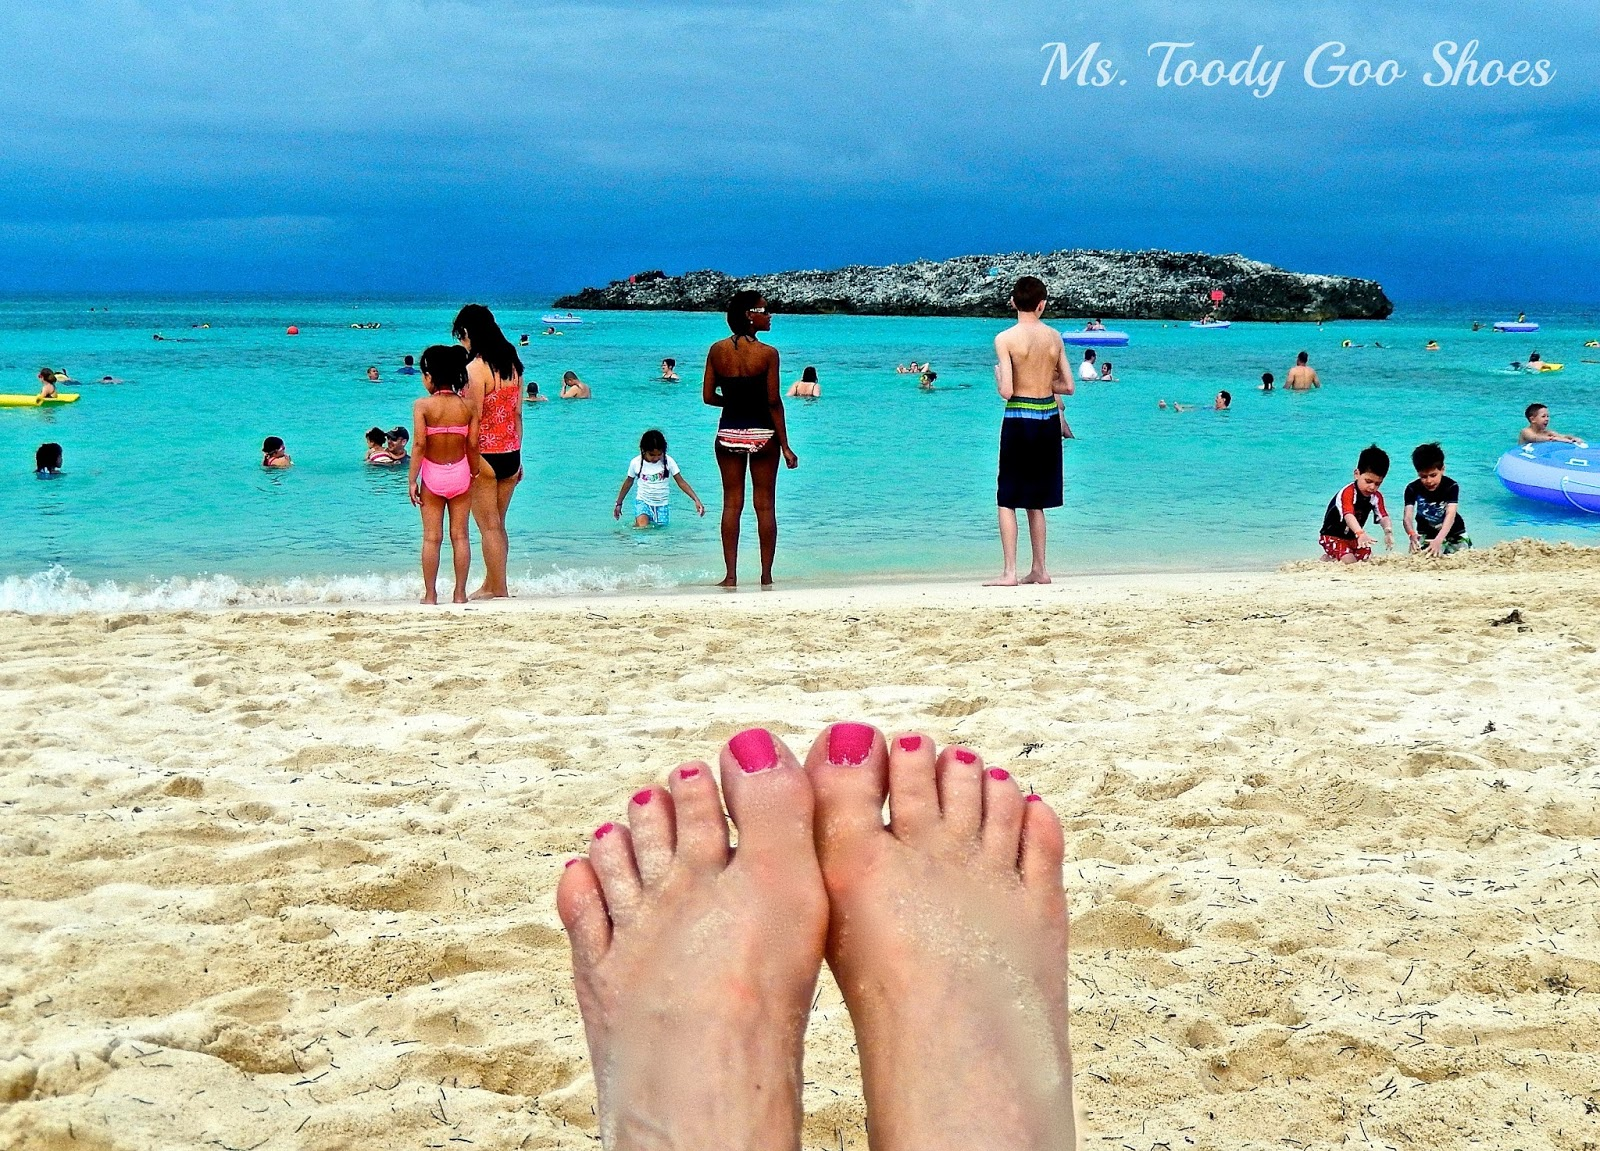 Great Stirrup Cay: Norwegian Breakaway Cruise Ship  --- Ms. Toody Goo Shoes